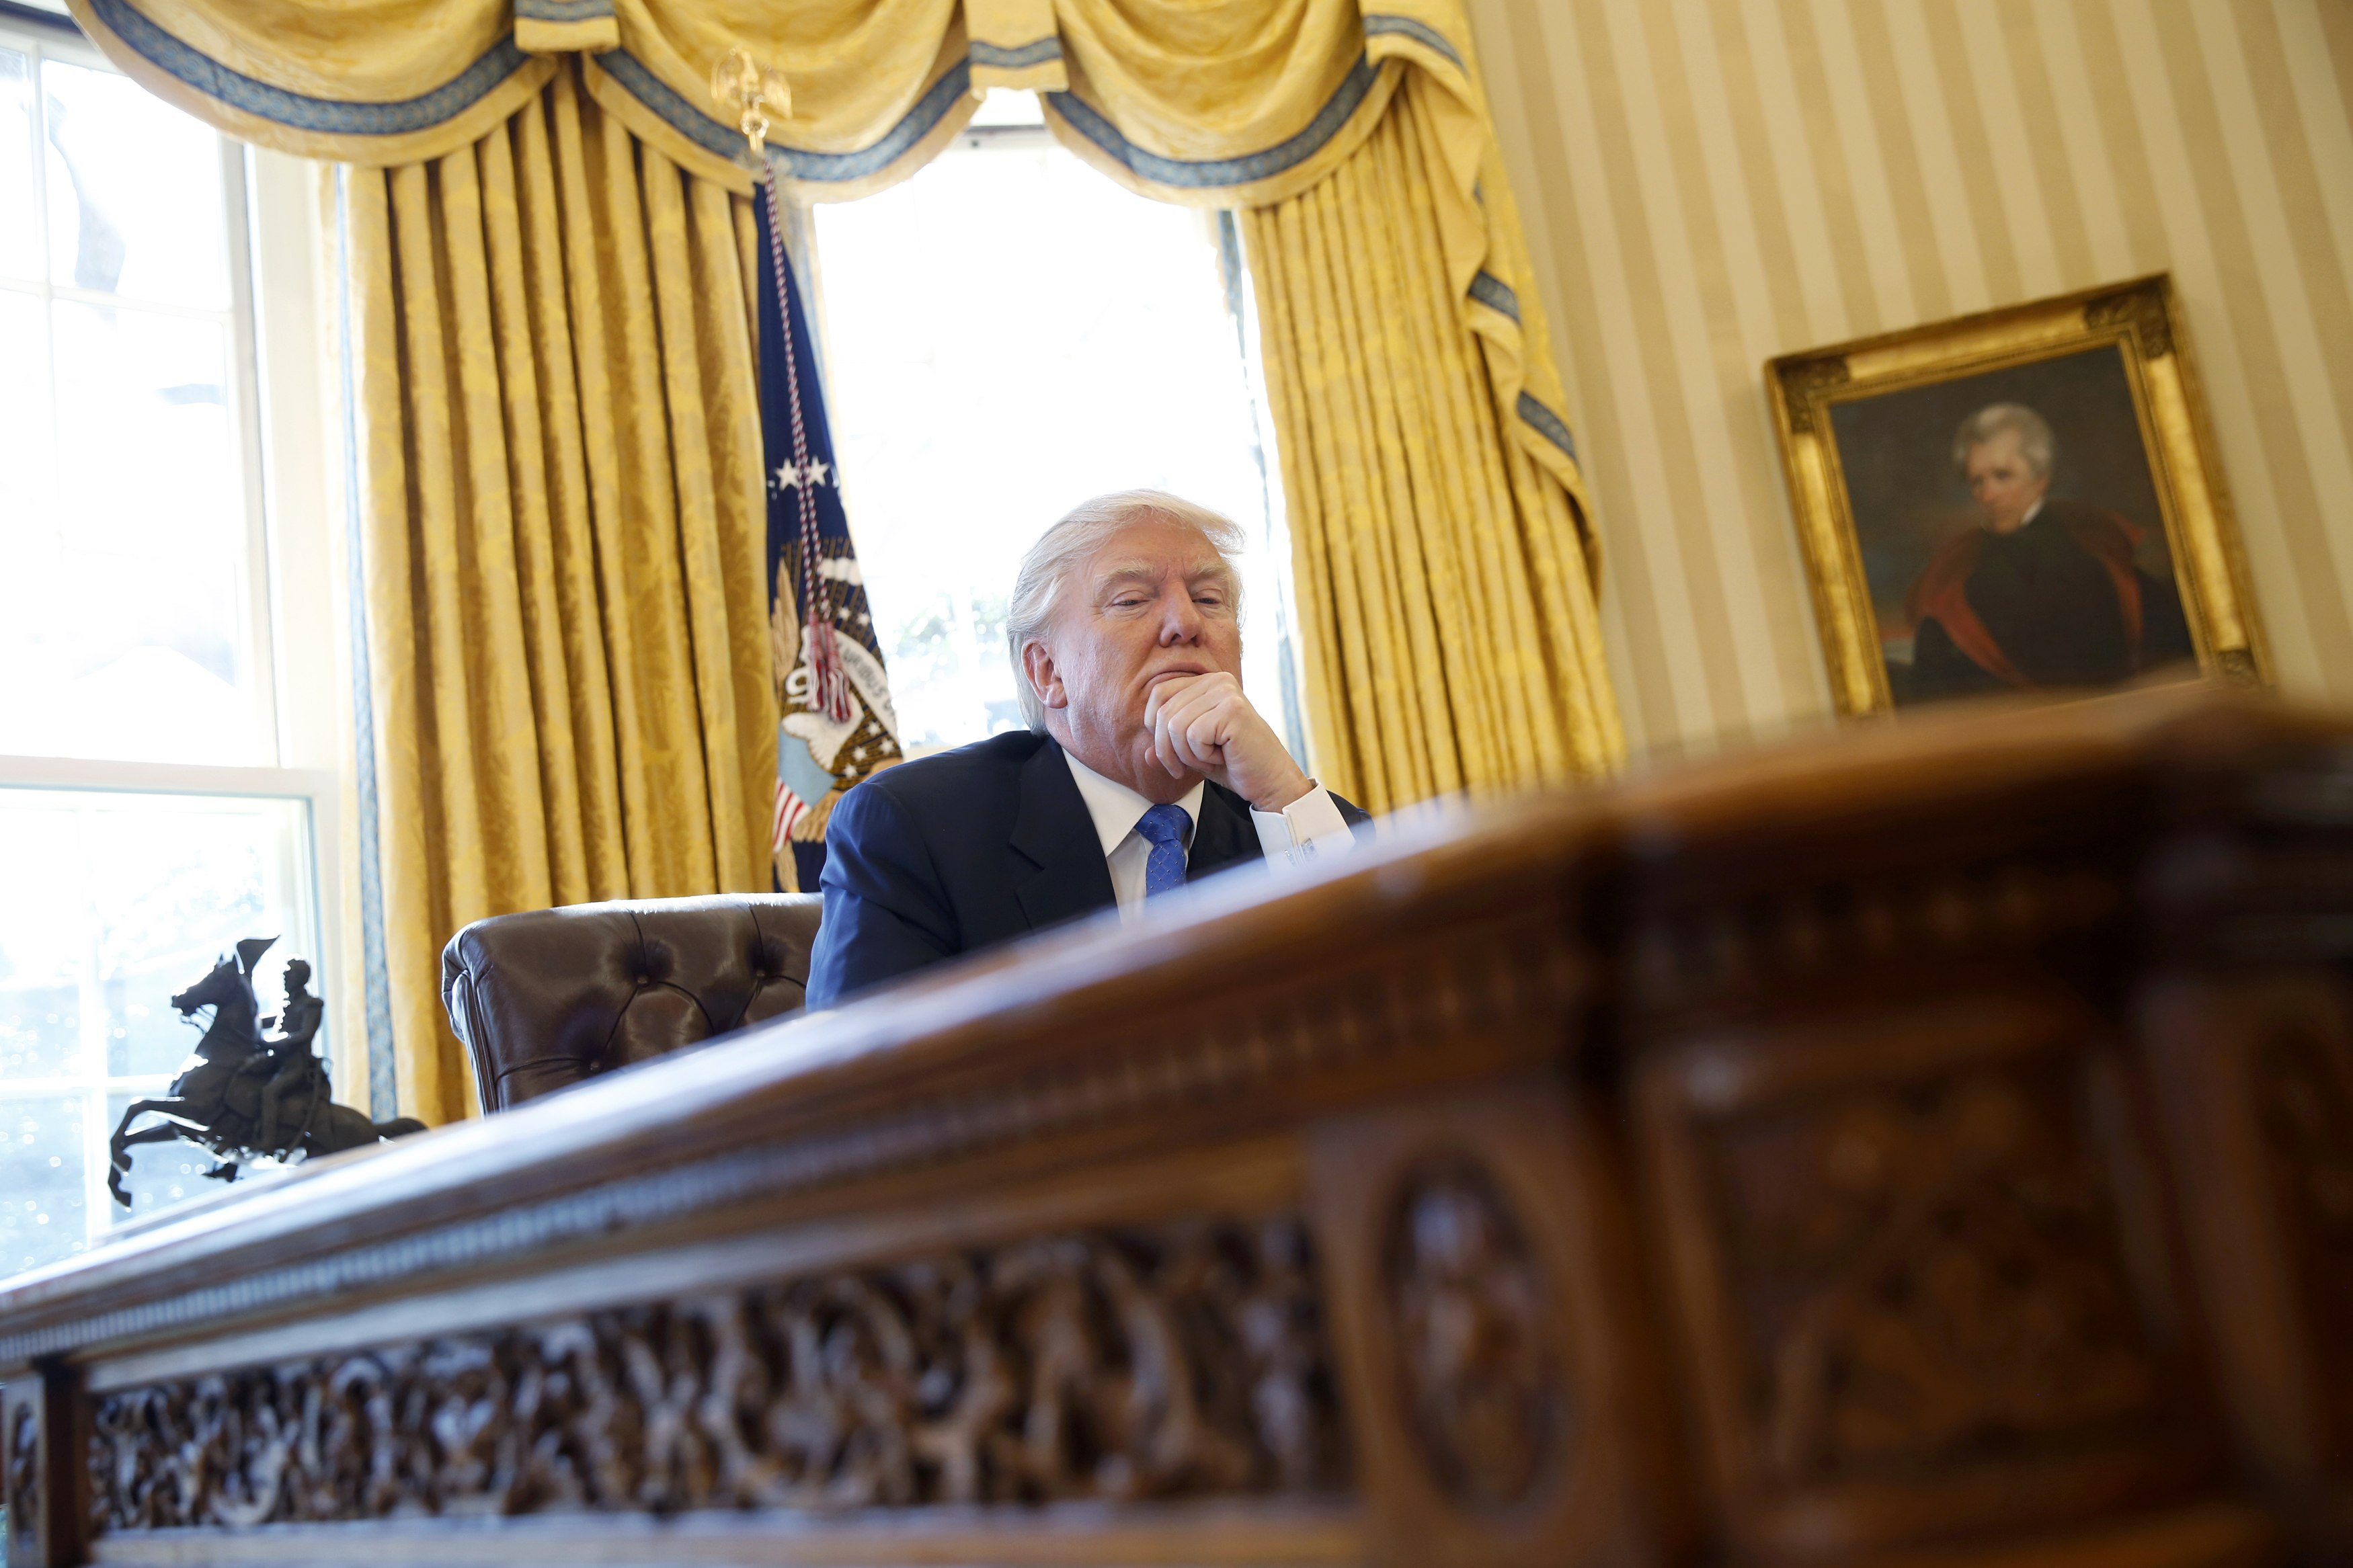 U.S. President Donald Trump pauses during an an interview with Reuters in the Oval Office at the White House in Washington, U.S., February 23, 2017. REUTERS/Jonathan Ernst